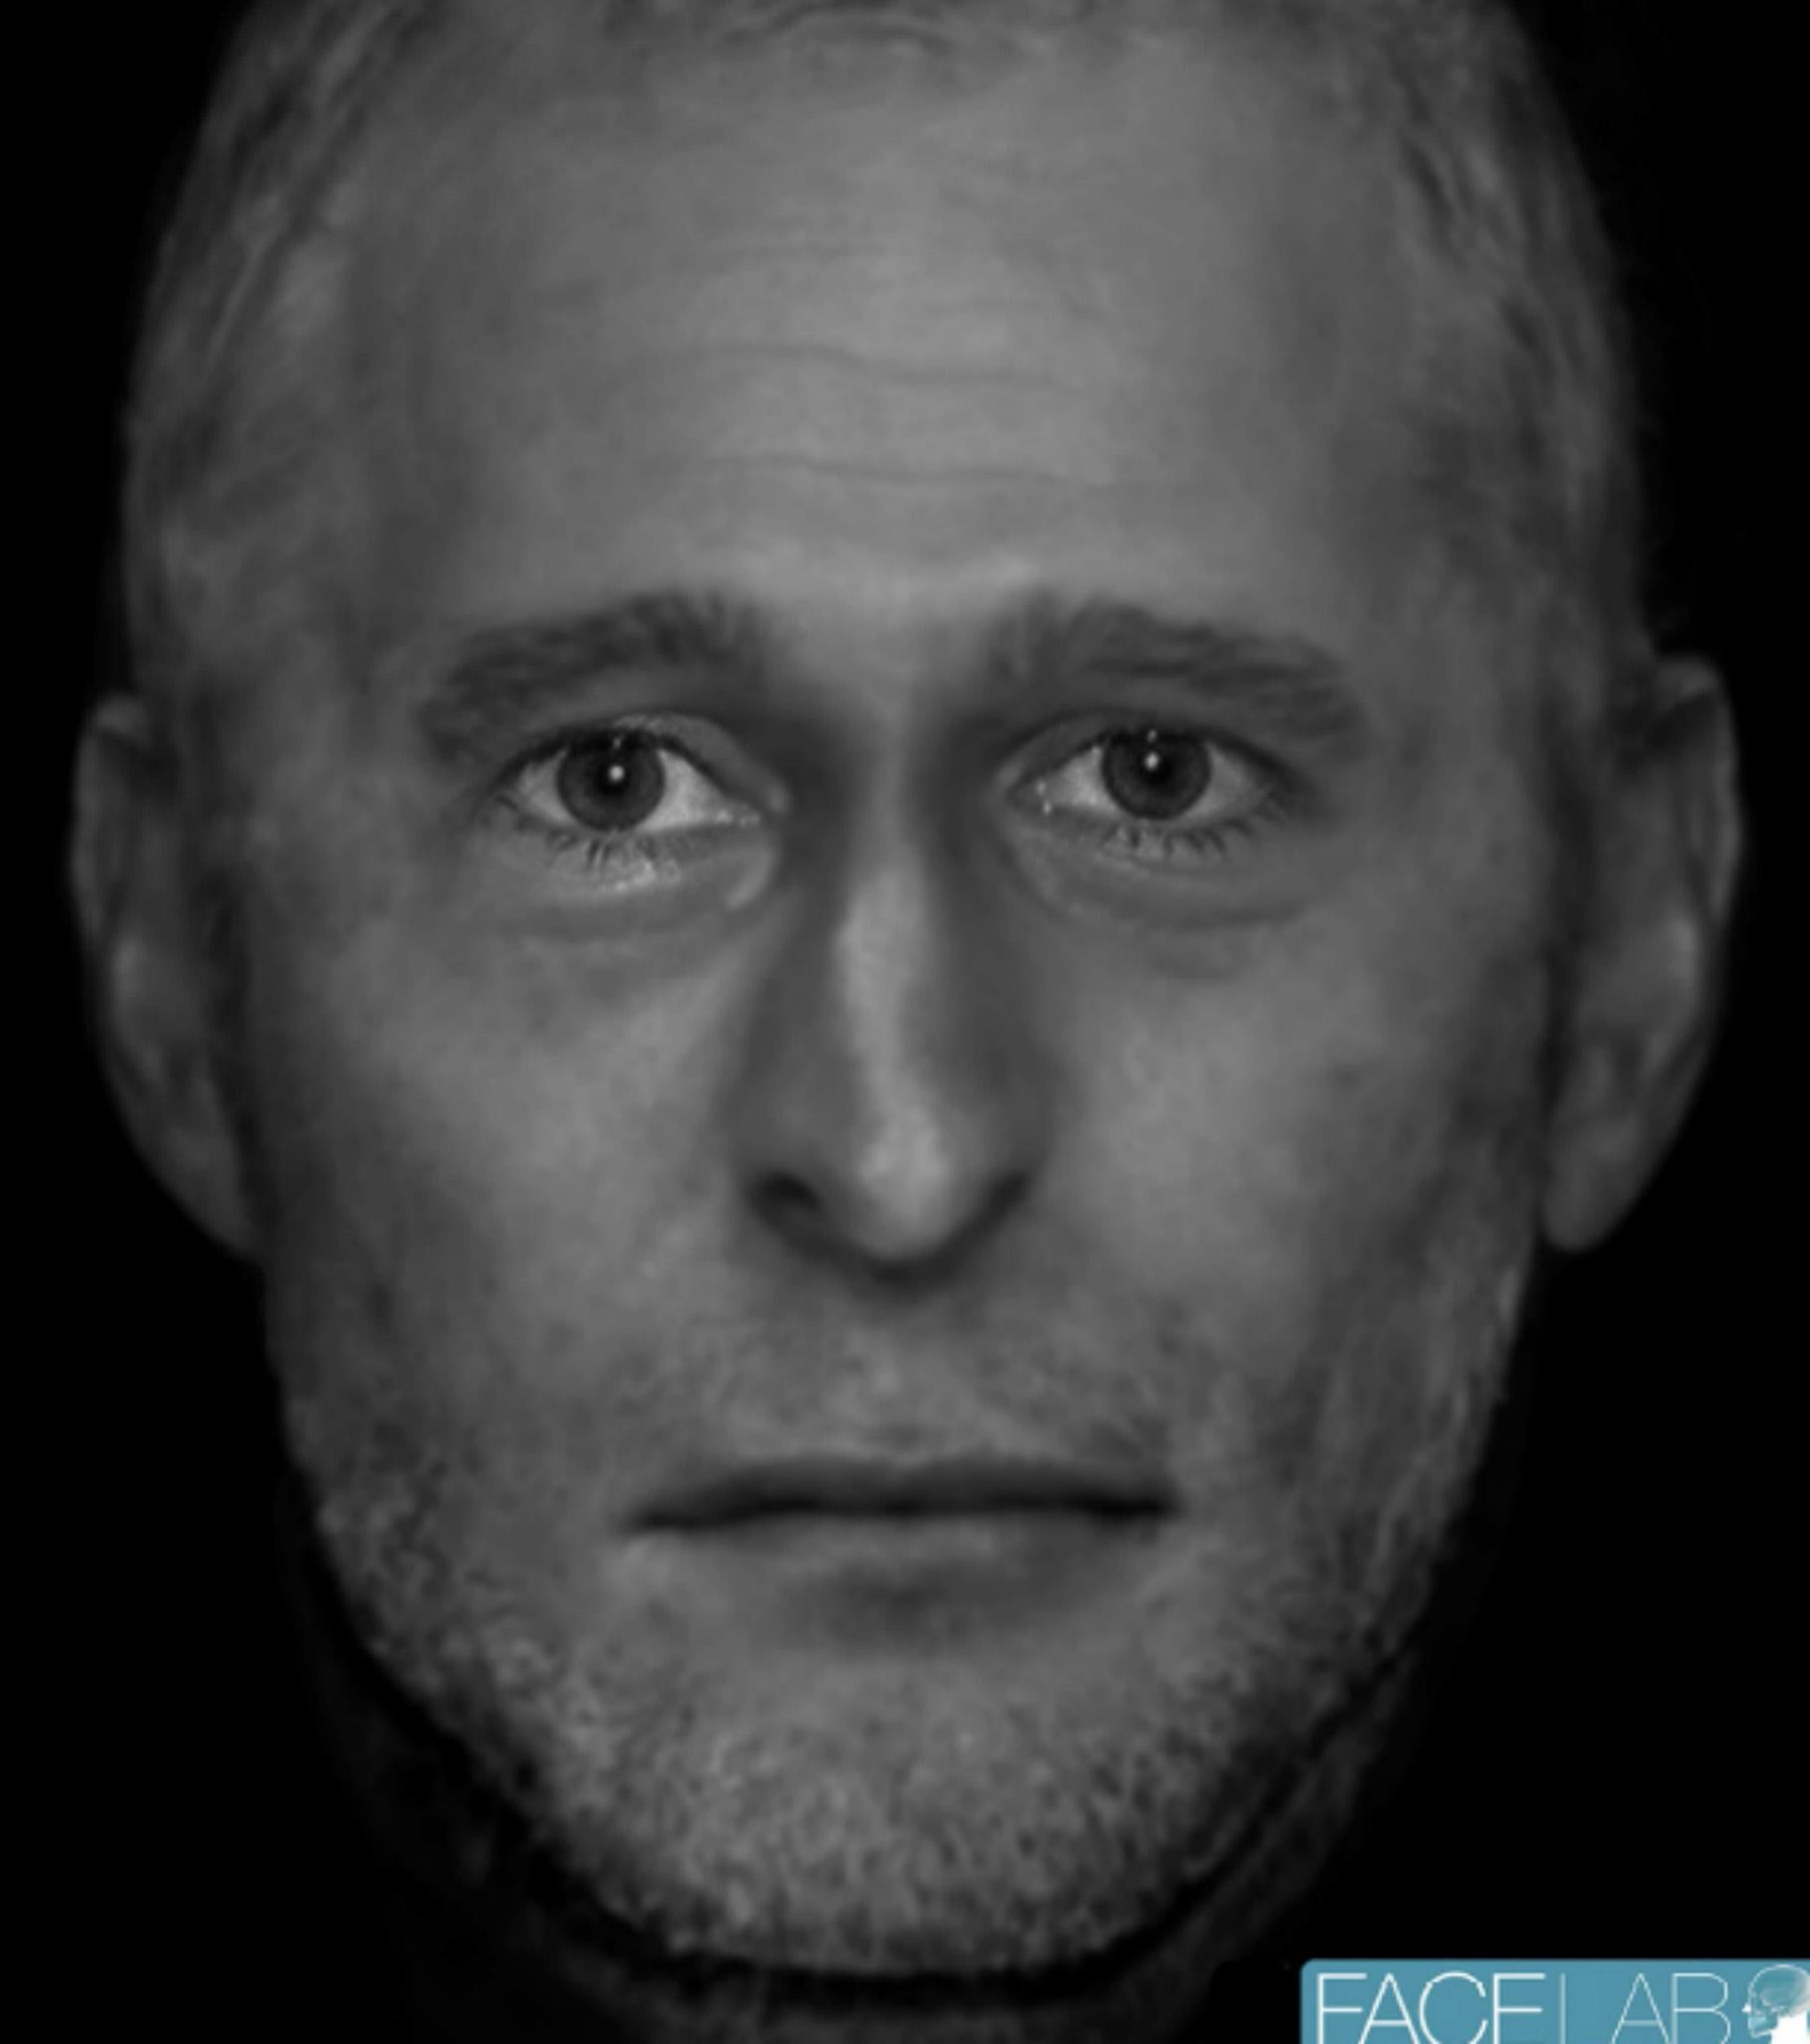 Face of mystery man found dead in woods reconstructed as police